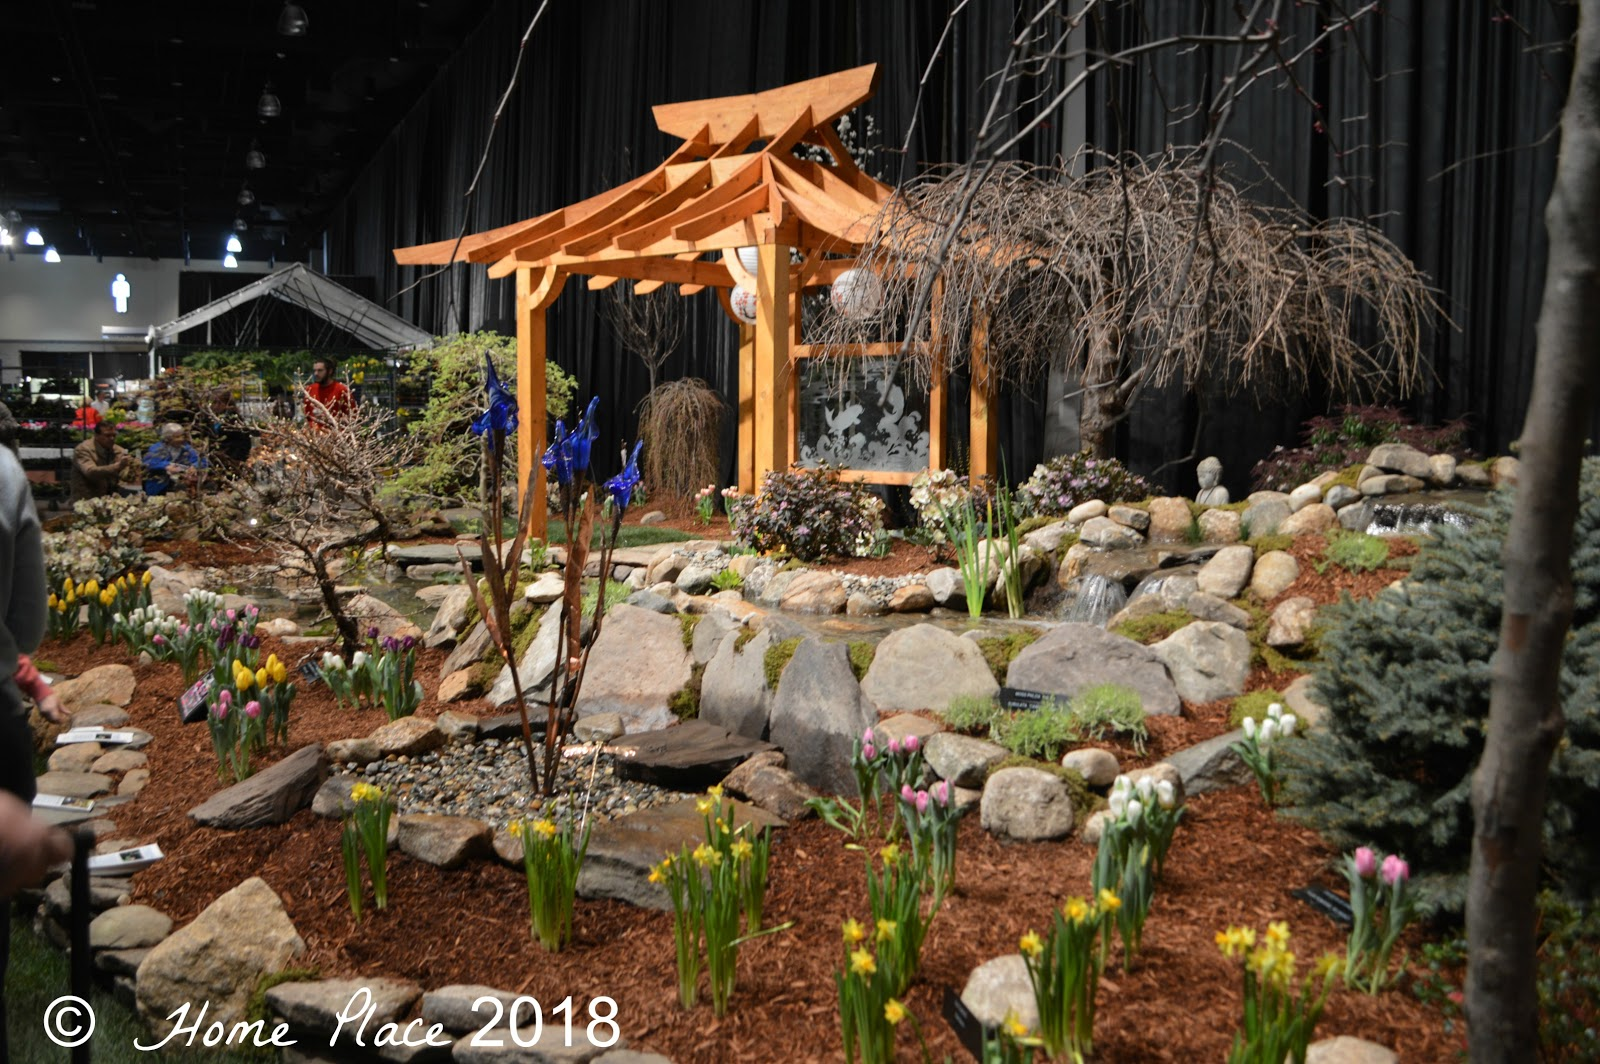 Home Place: 2018 Connecticut Flower and Garden Show - in Hartford CT